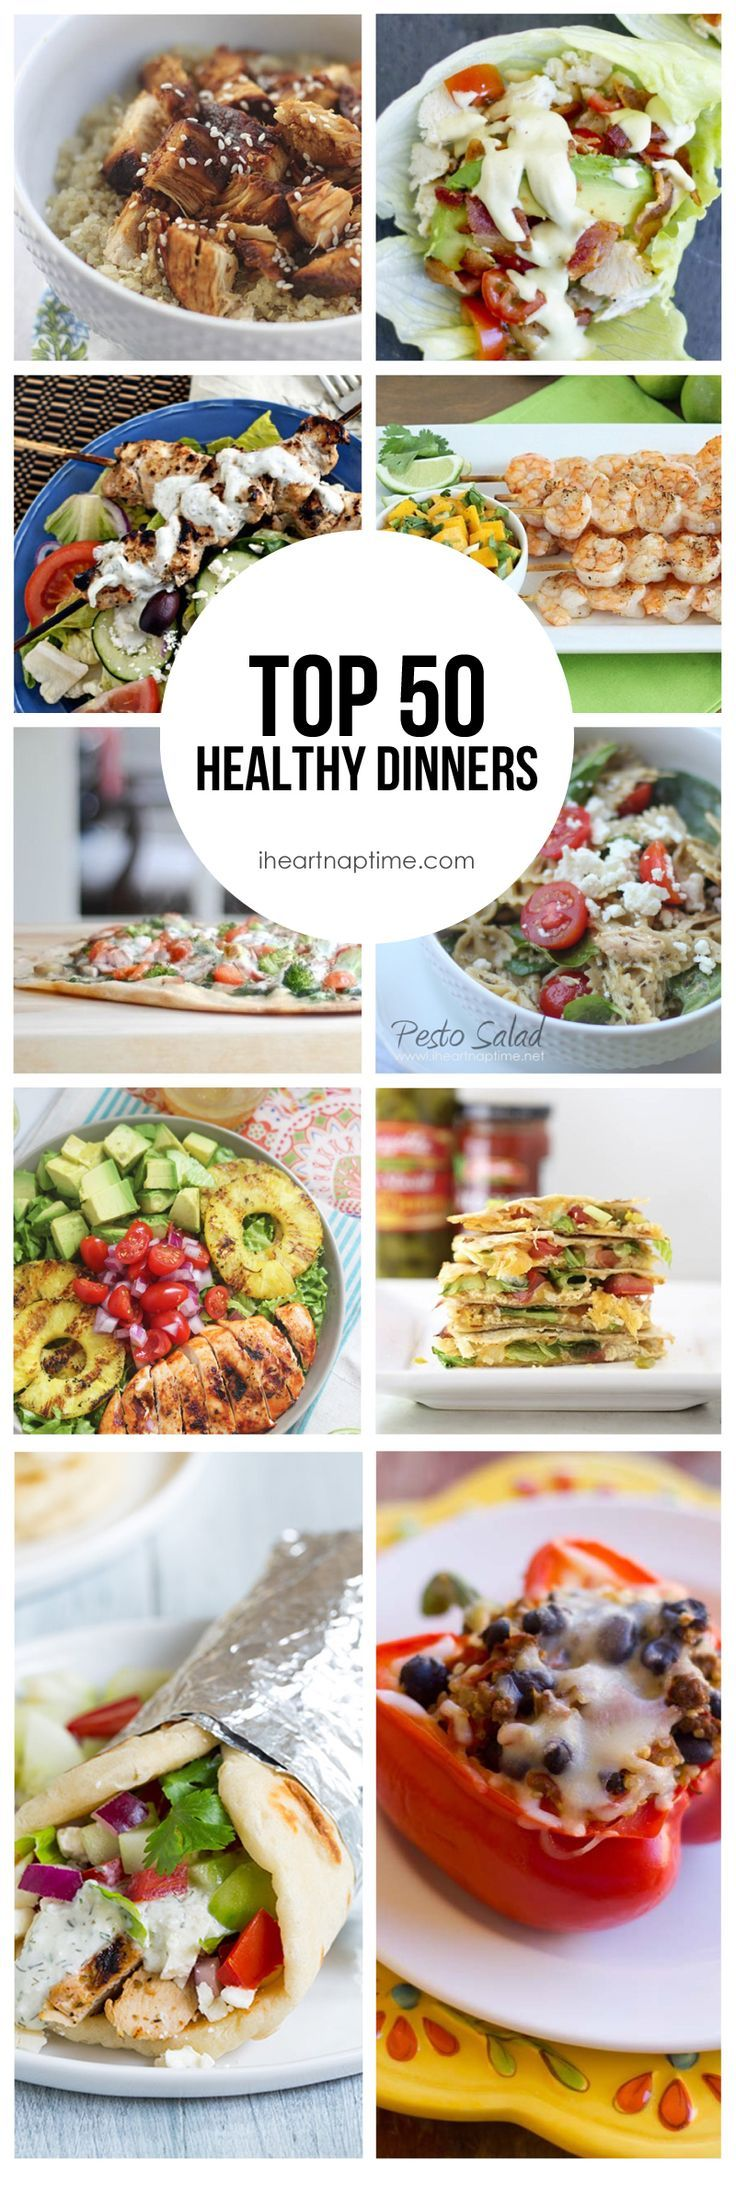 Top 50 Healthy Dinners So Many Delicious Recipes To Try Great Meal Ideas